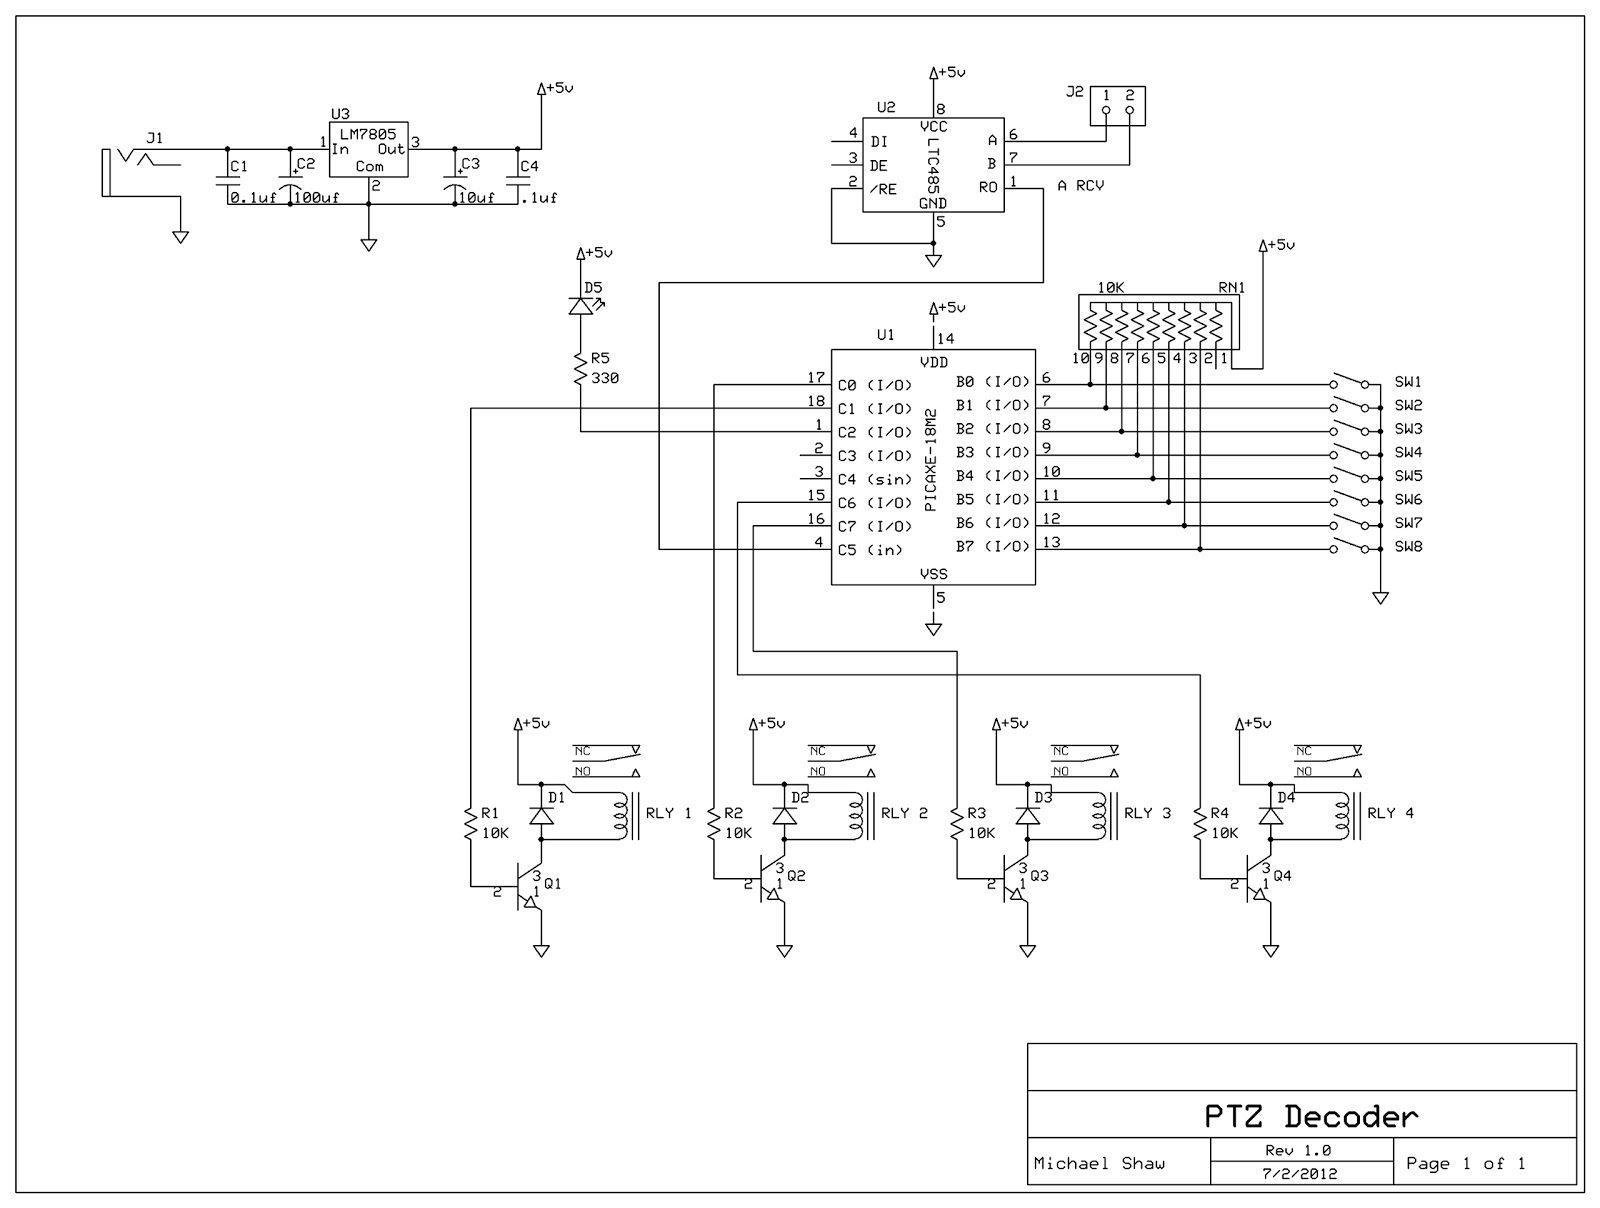 Rs 485 Wiring Diagram For Ptz Controller 40 Images Rs485 4 Decoder Schmatic Mike Shaw Makes Blog Making A Camera Pinout